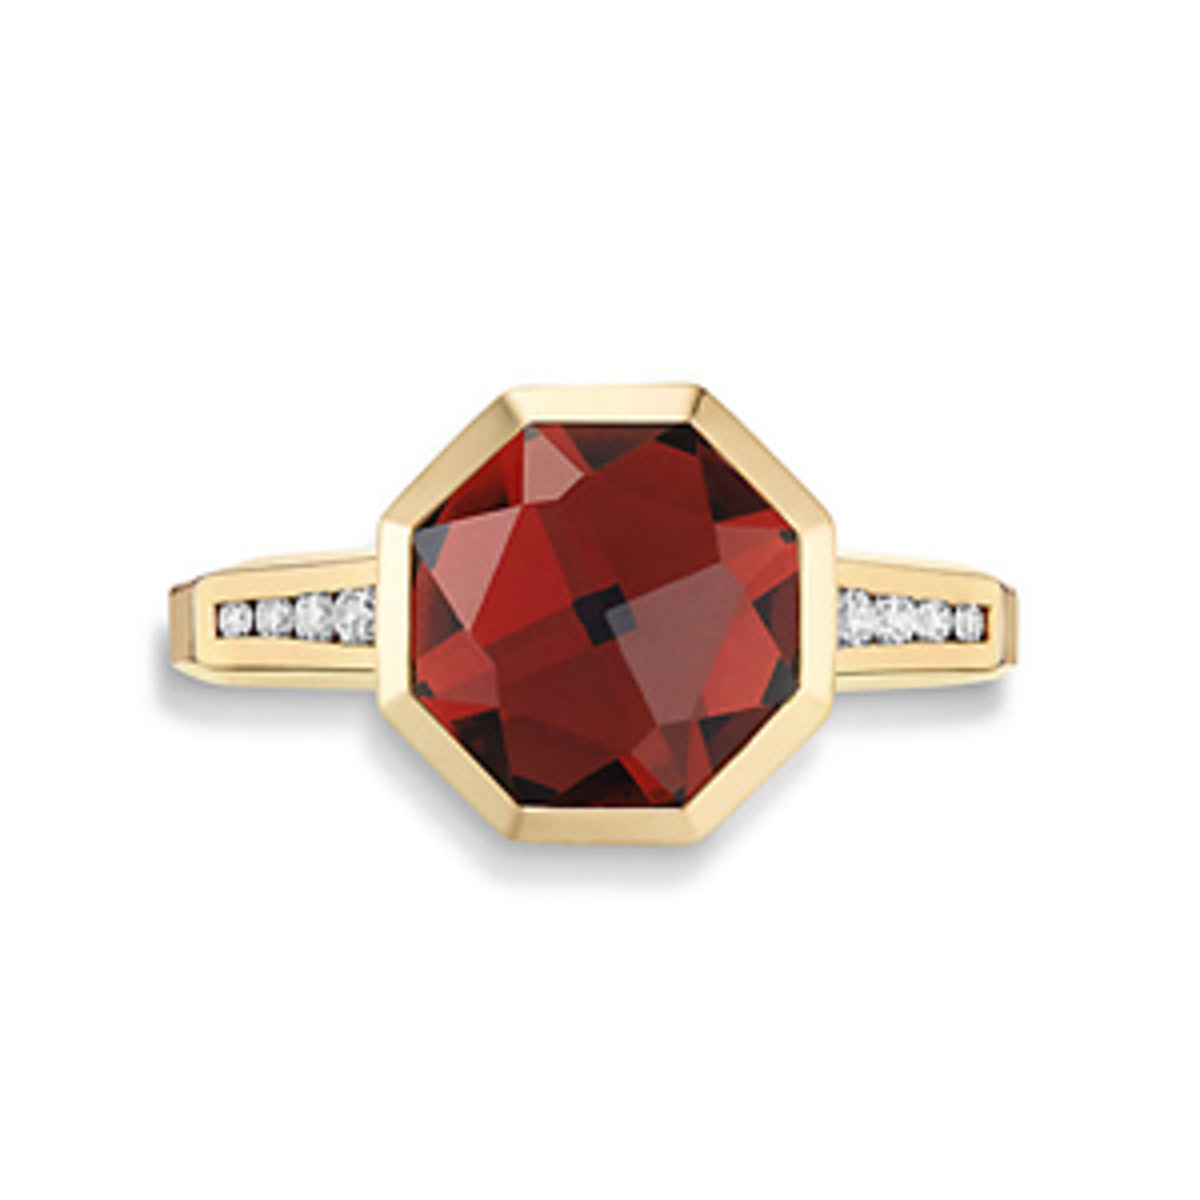 Guilin Octagon Ring With Garnet And Diamonds in 18K Gold